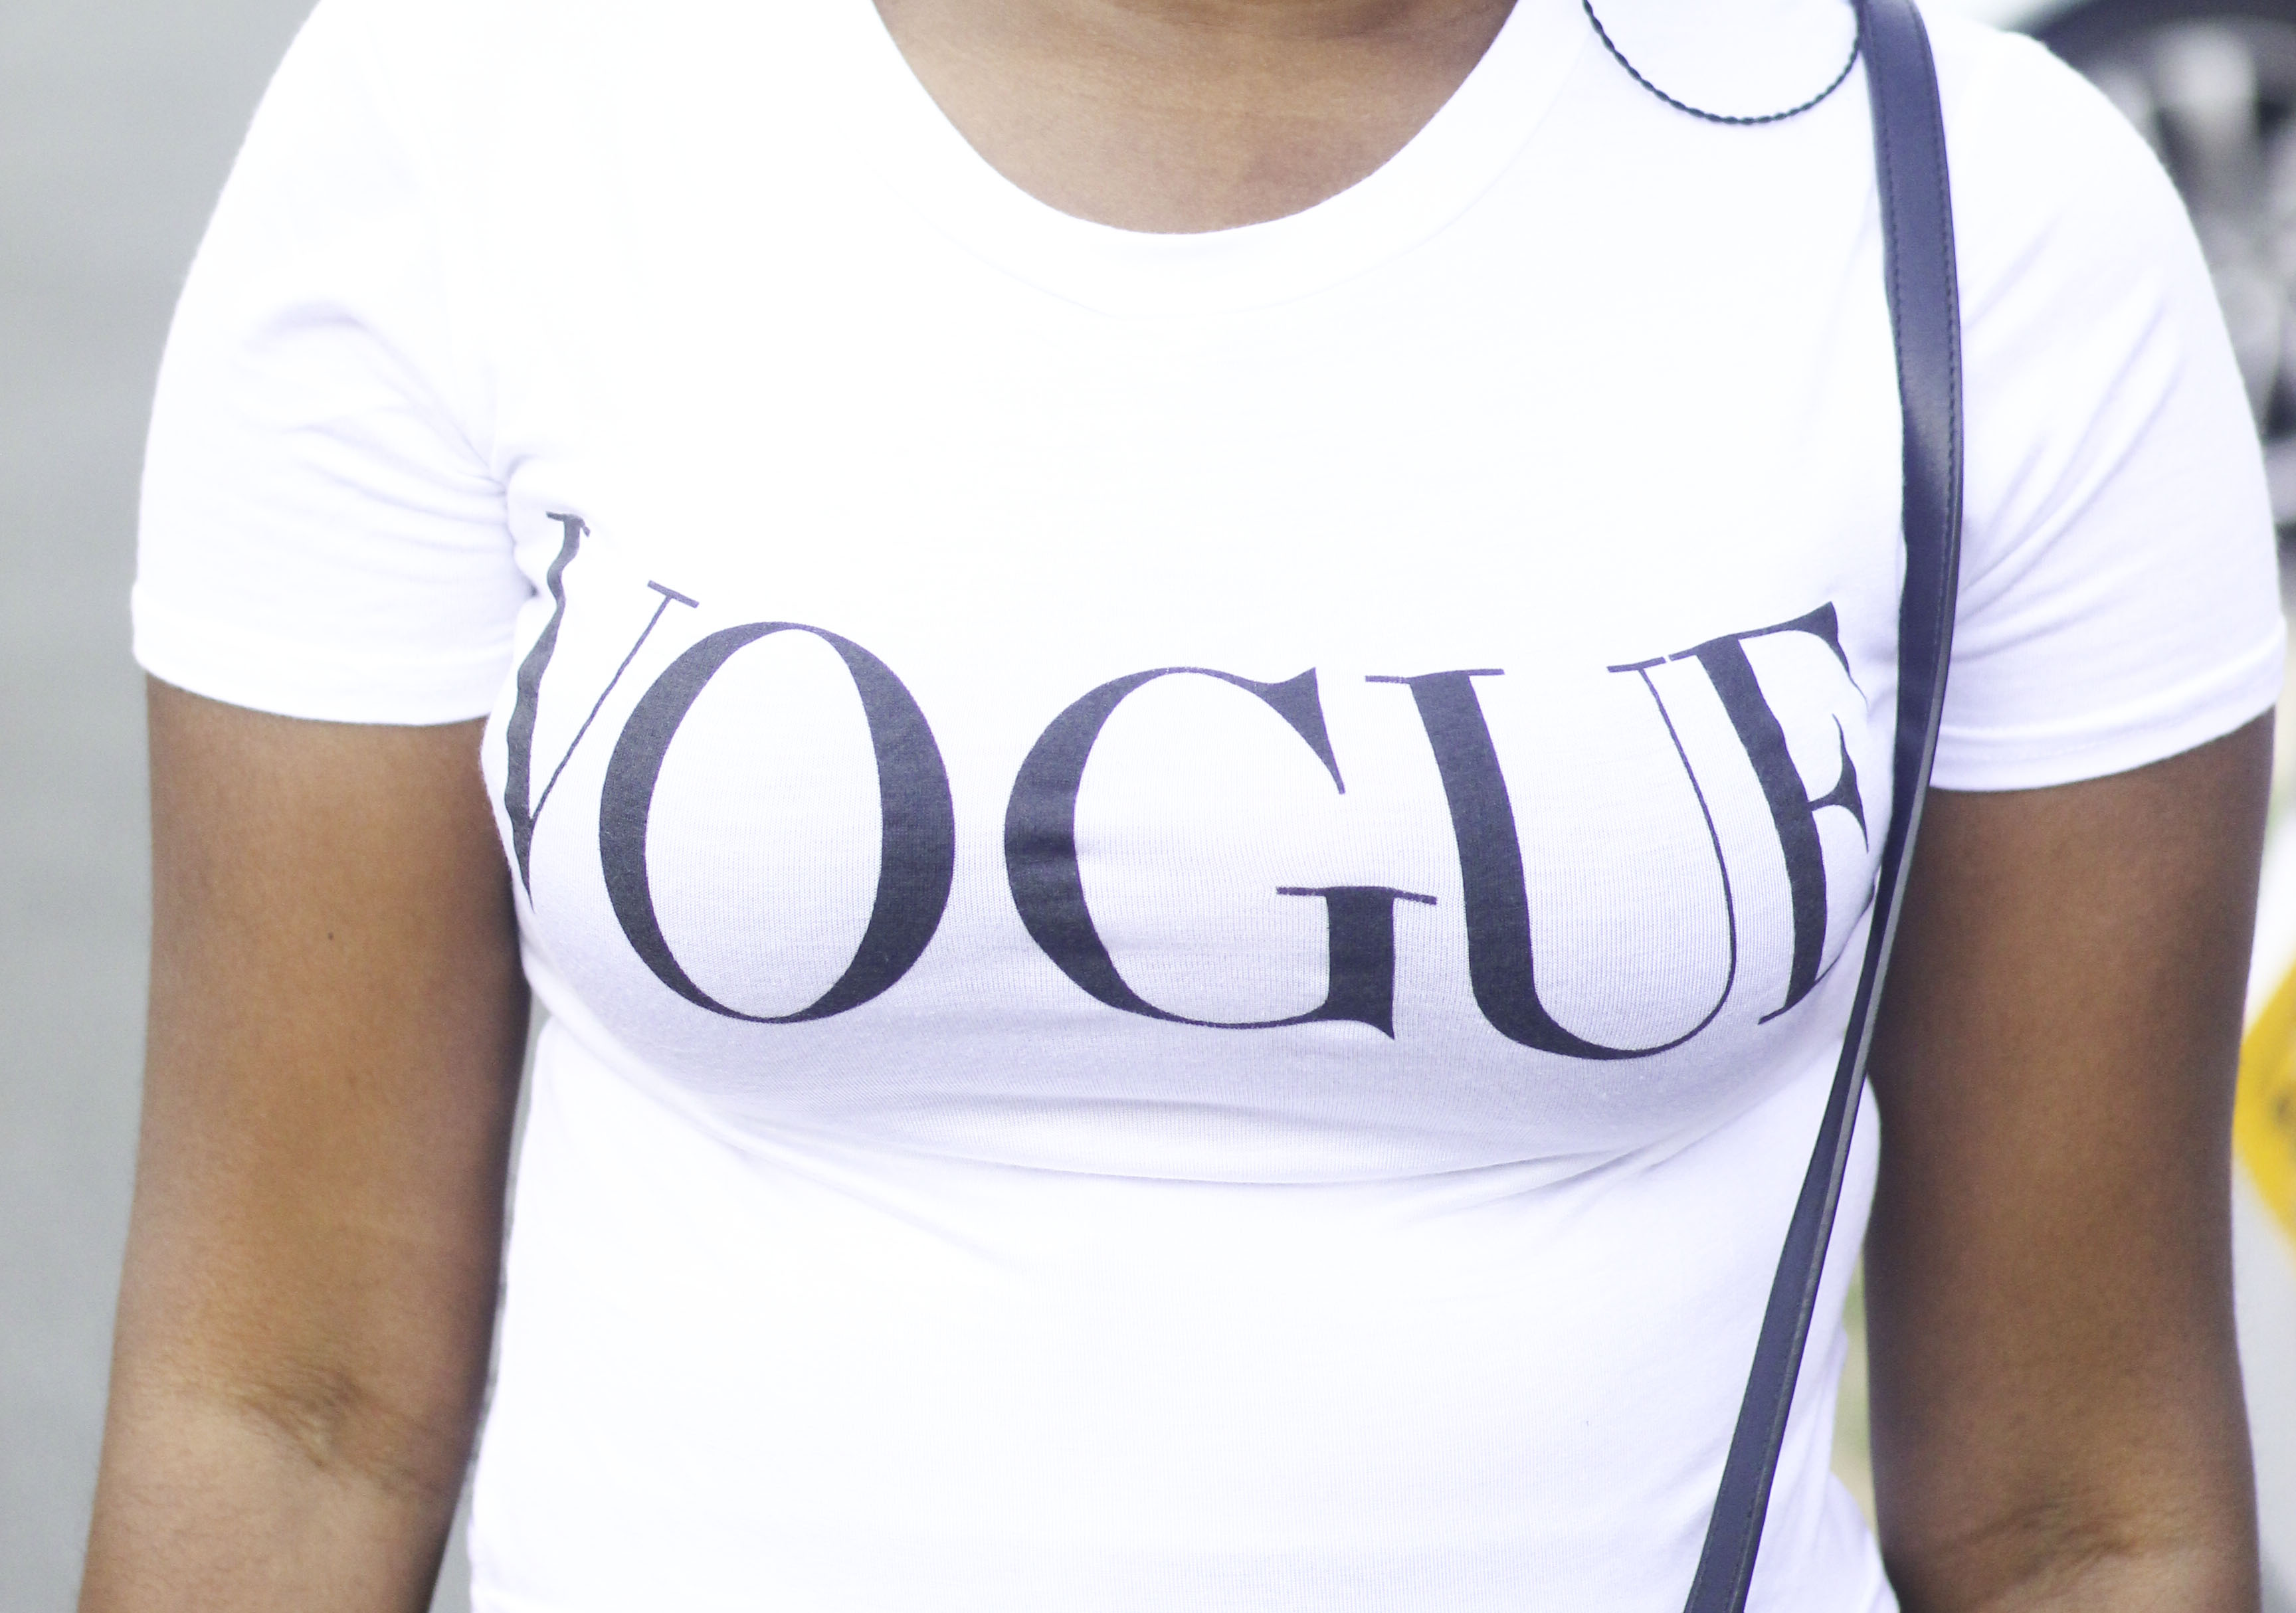 e5dbbfea59f94f Outfit Post - Wearing a White Vogue Crop Top - fashionandstylepolice ...